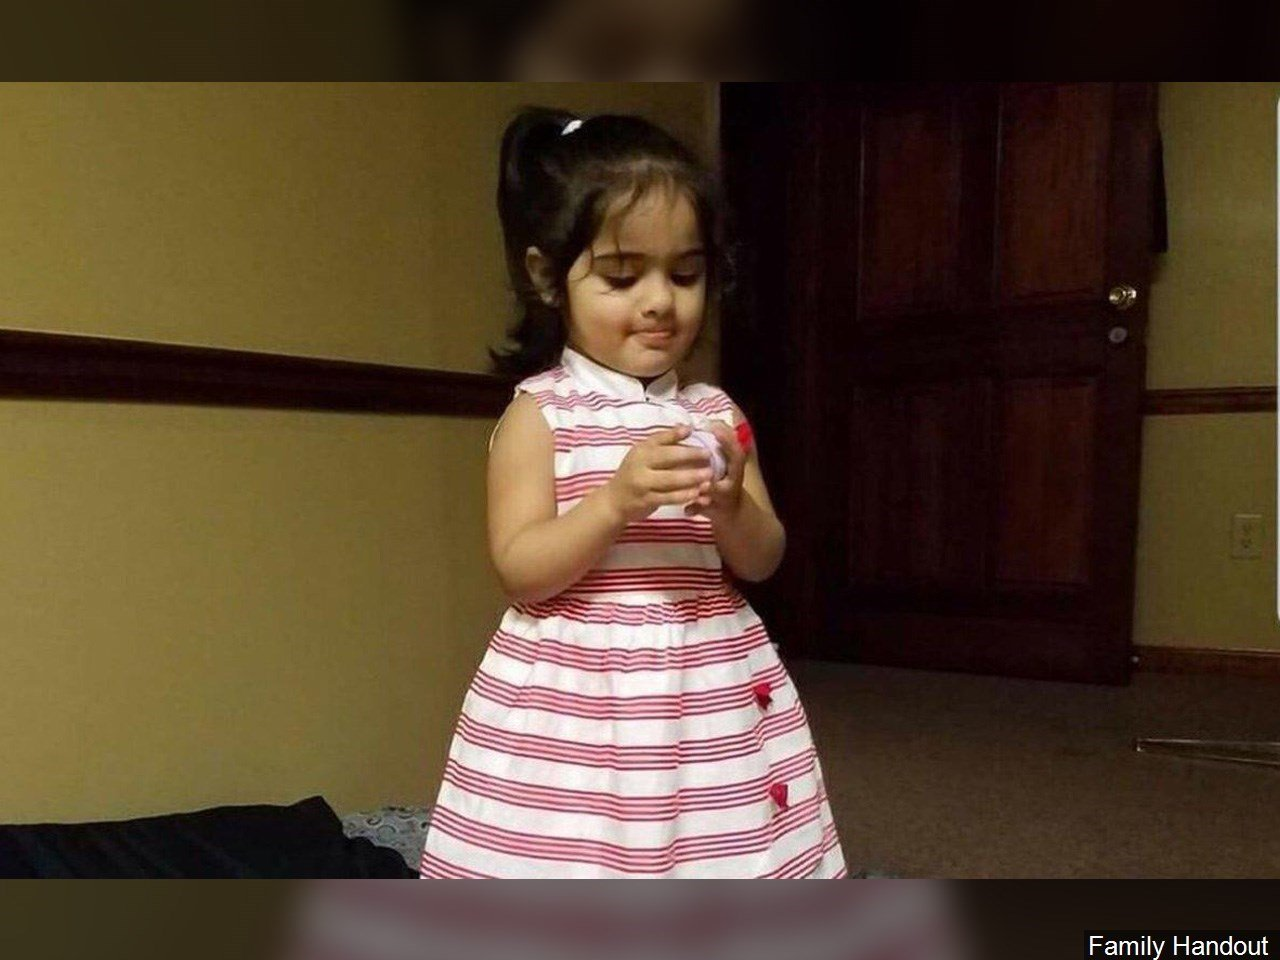 Girl, 2, dies after Payless store mirror falls on her, officials say